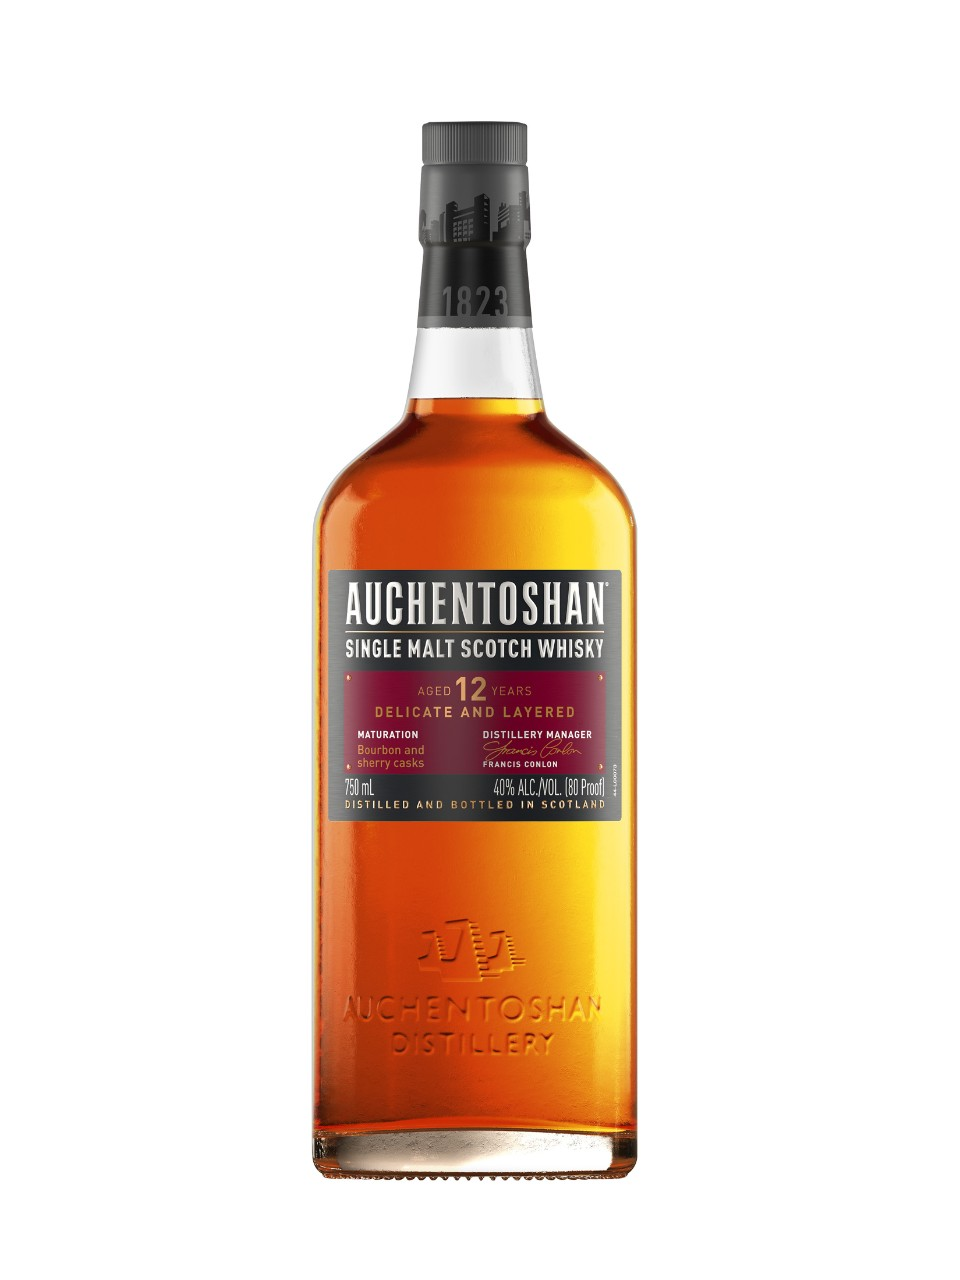 Image for Auchentoshan 12 Year Old Single Malt Scotch Whisky from LCBO